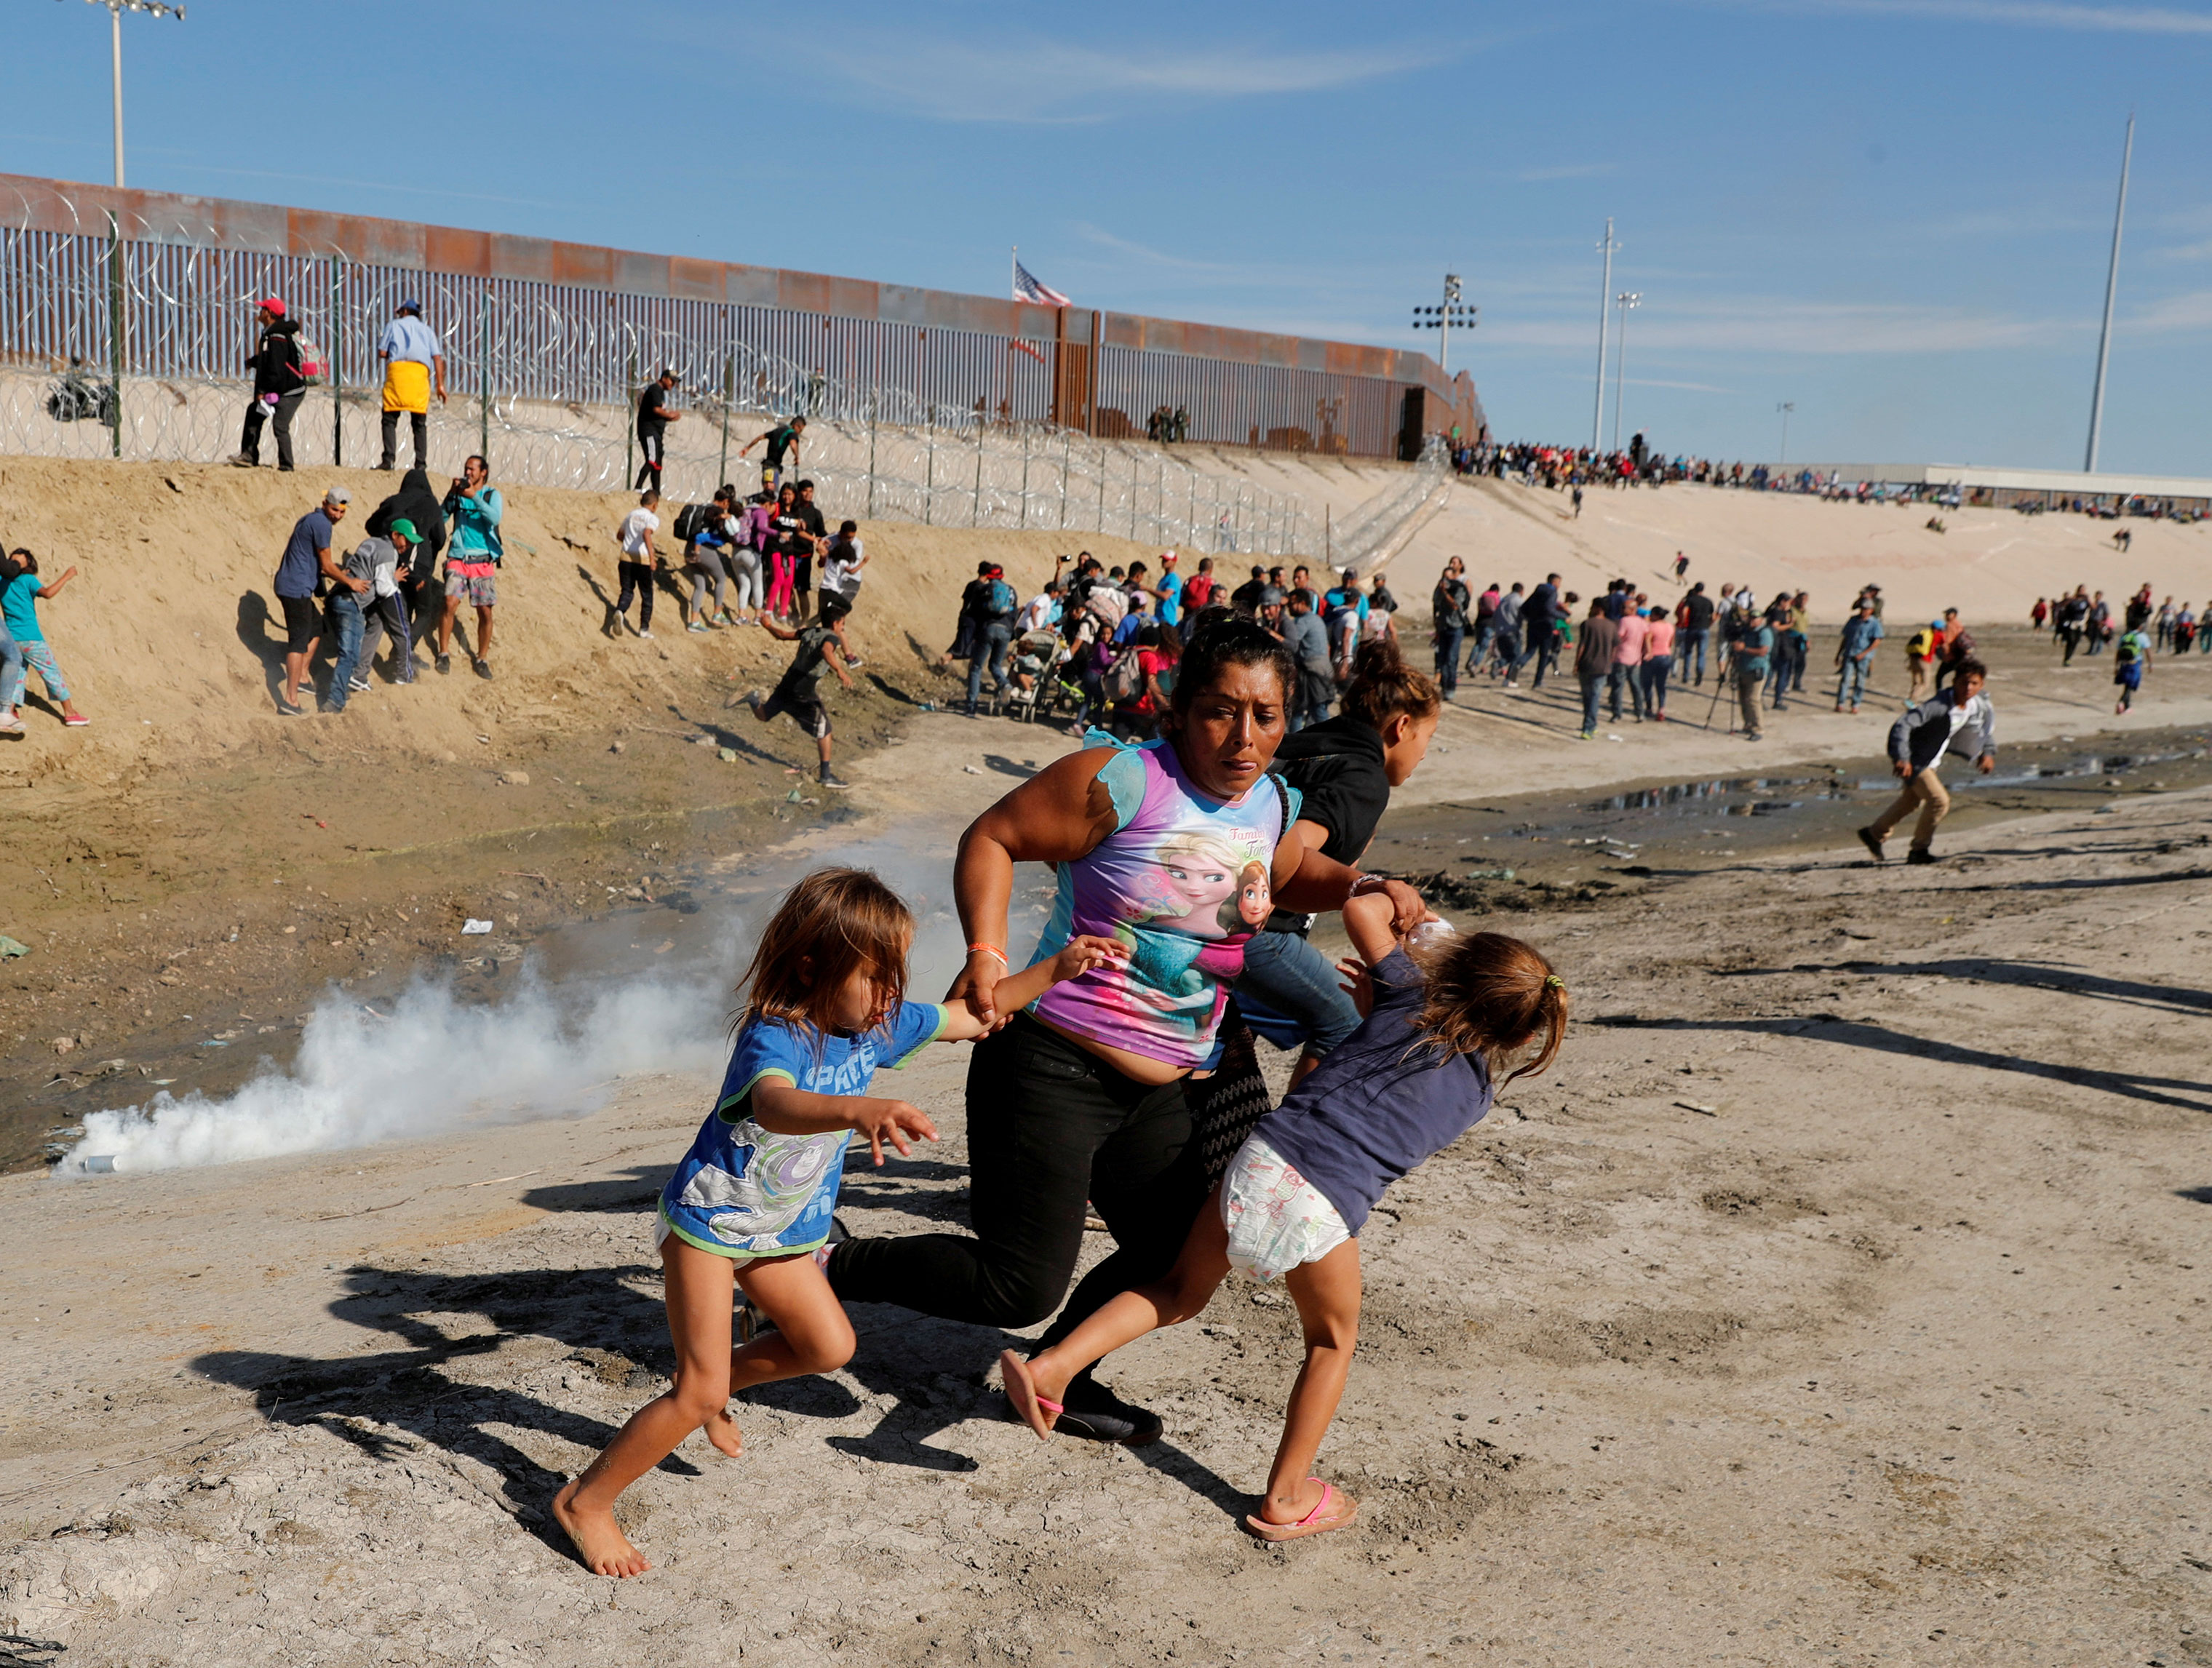 Castro runs away from tear gas with her five-year-old twin daughters Sayra Mavet Mejia Meza, left, and Cheyli Nallely Mejia Meza, right, in front of the border wall in Tijuana, Mexico, on Nov. 25, 2018.